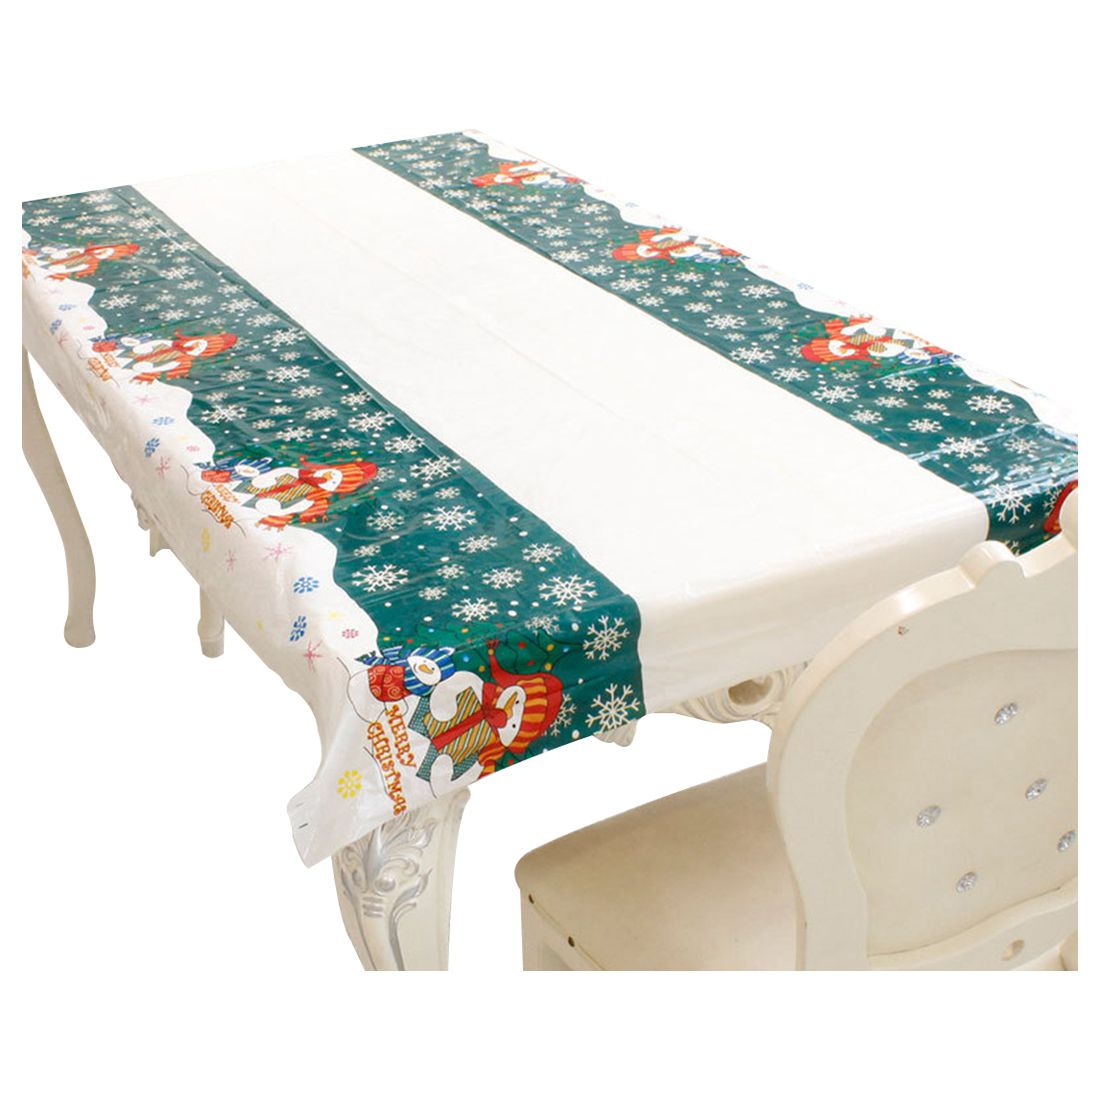 nappe de noel rectangulaire jetable couvercle de table nappe de table oblon y9z7 ebay. Black Bedroom Furniture Sets. Home Design Ideas